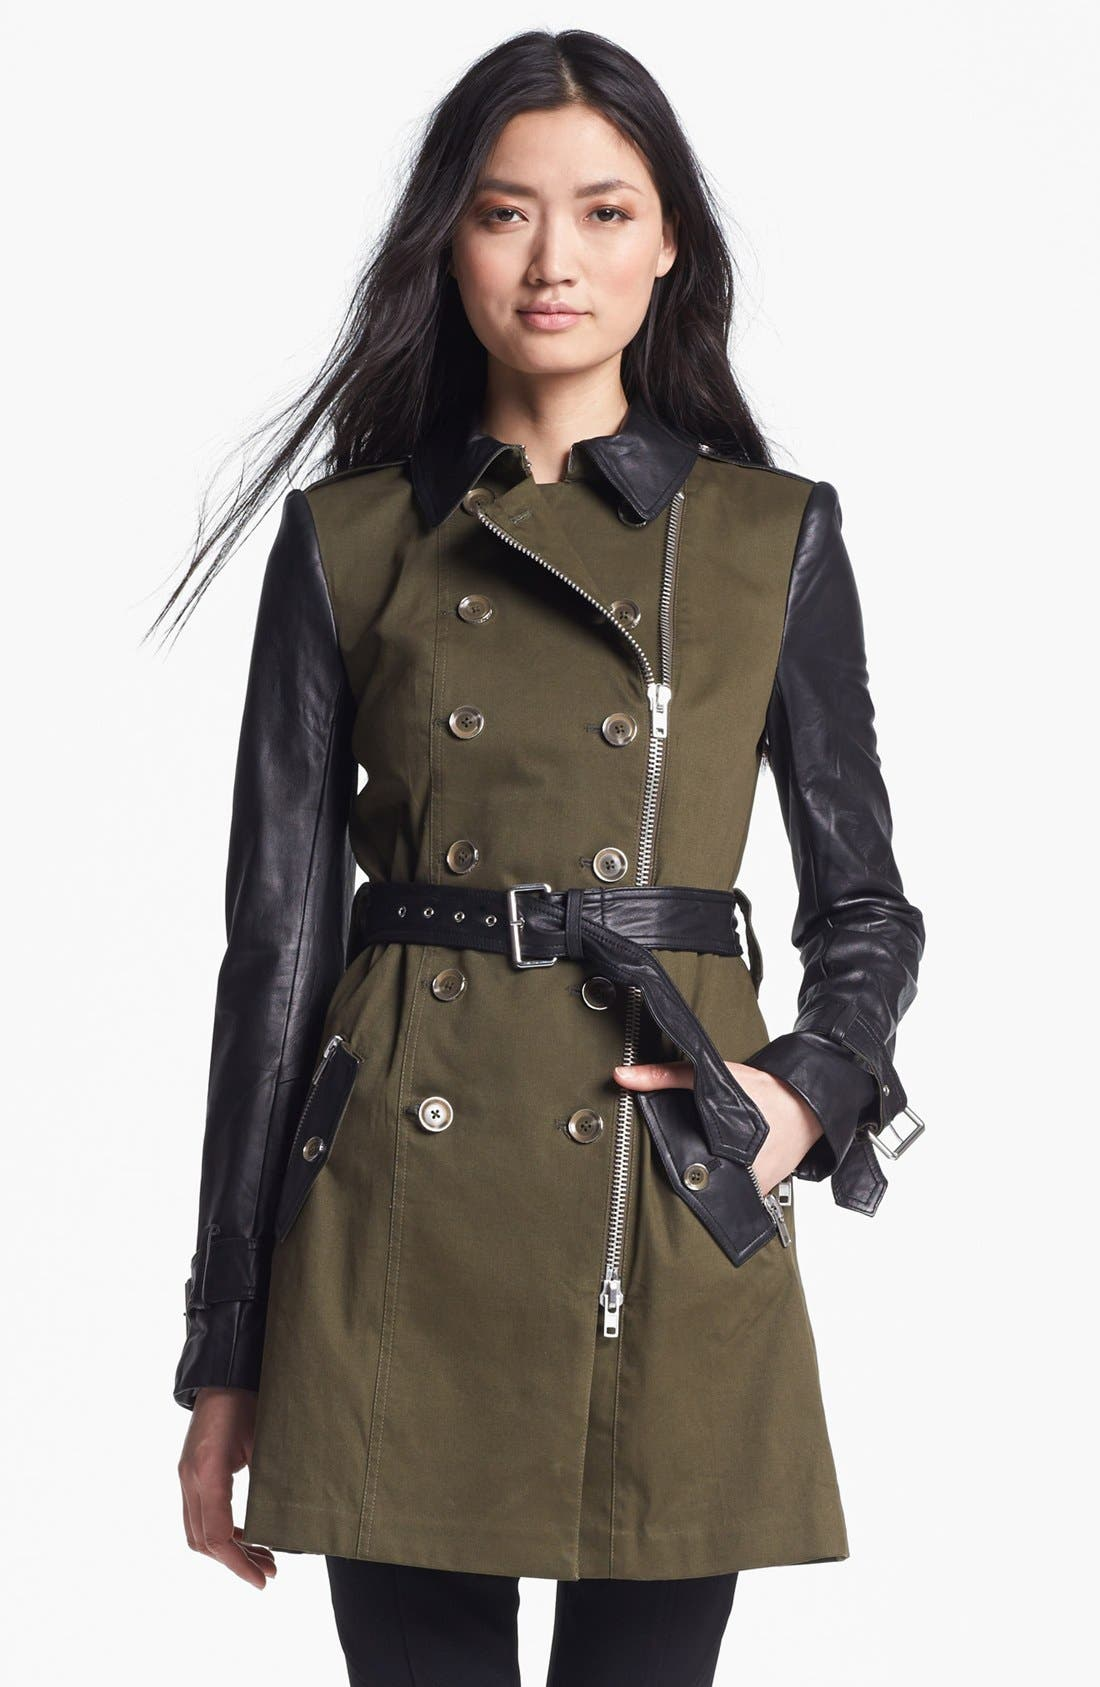 Alternate Image 1 Selected - Rachel Zoe Belted Double Breasted Trench Coat